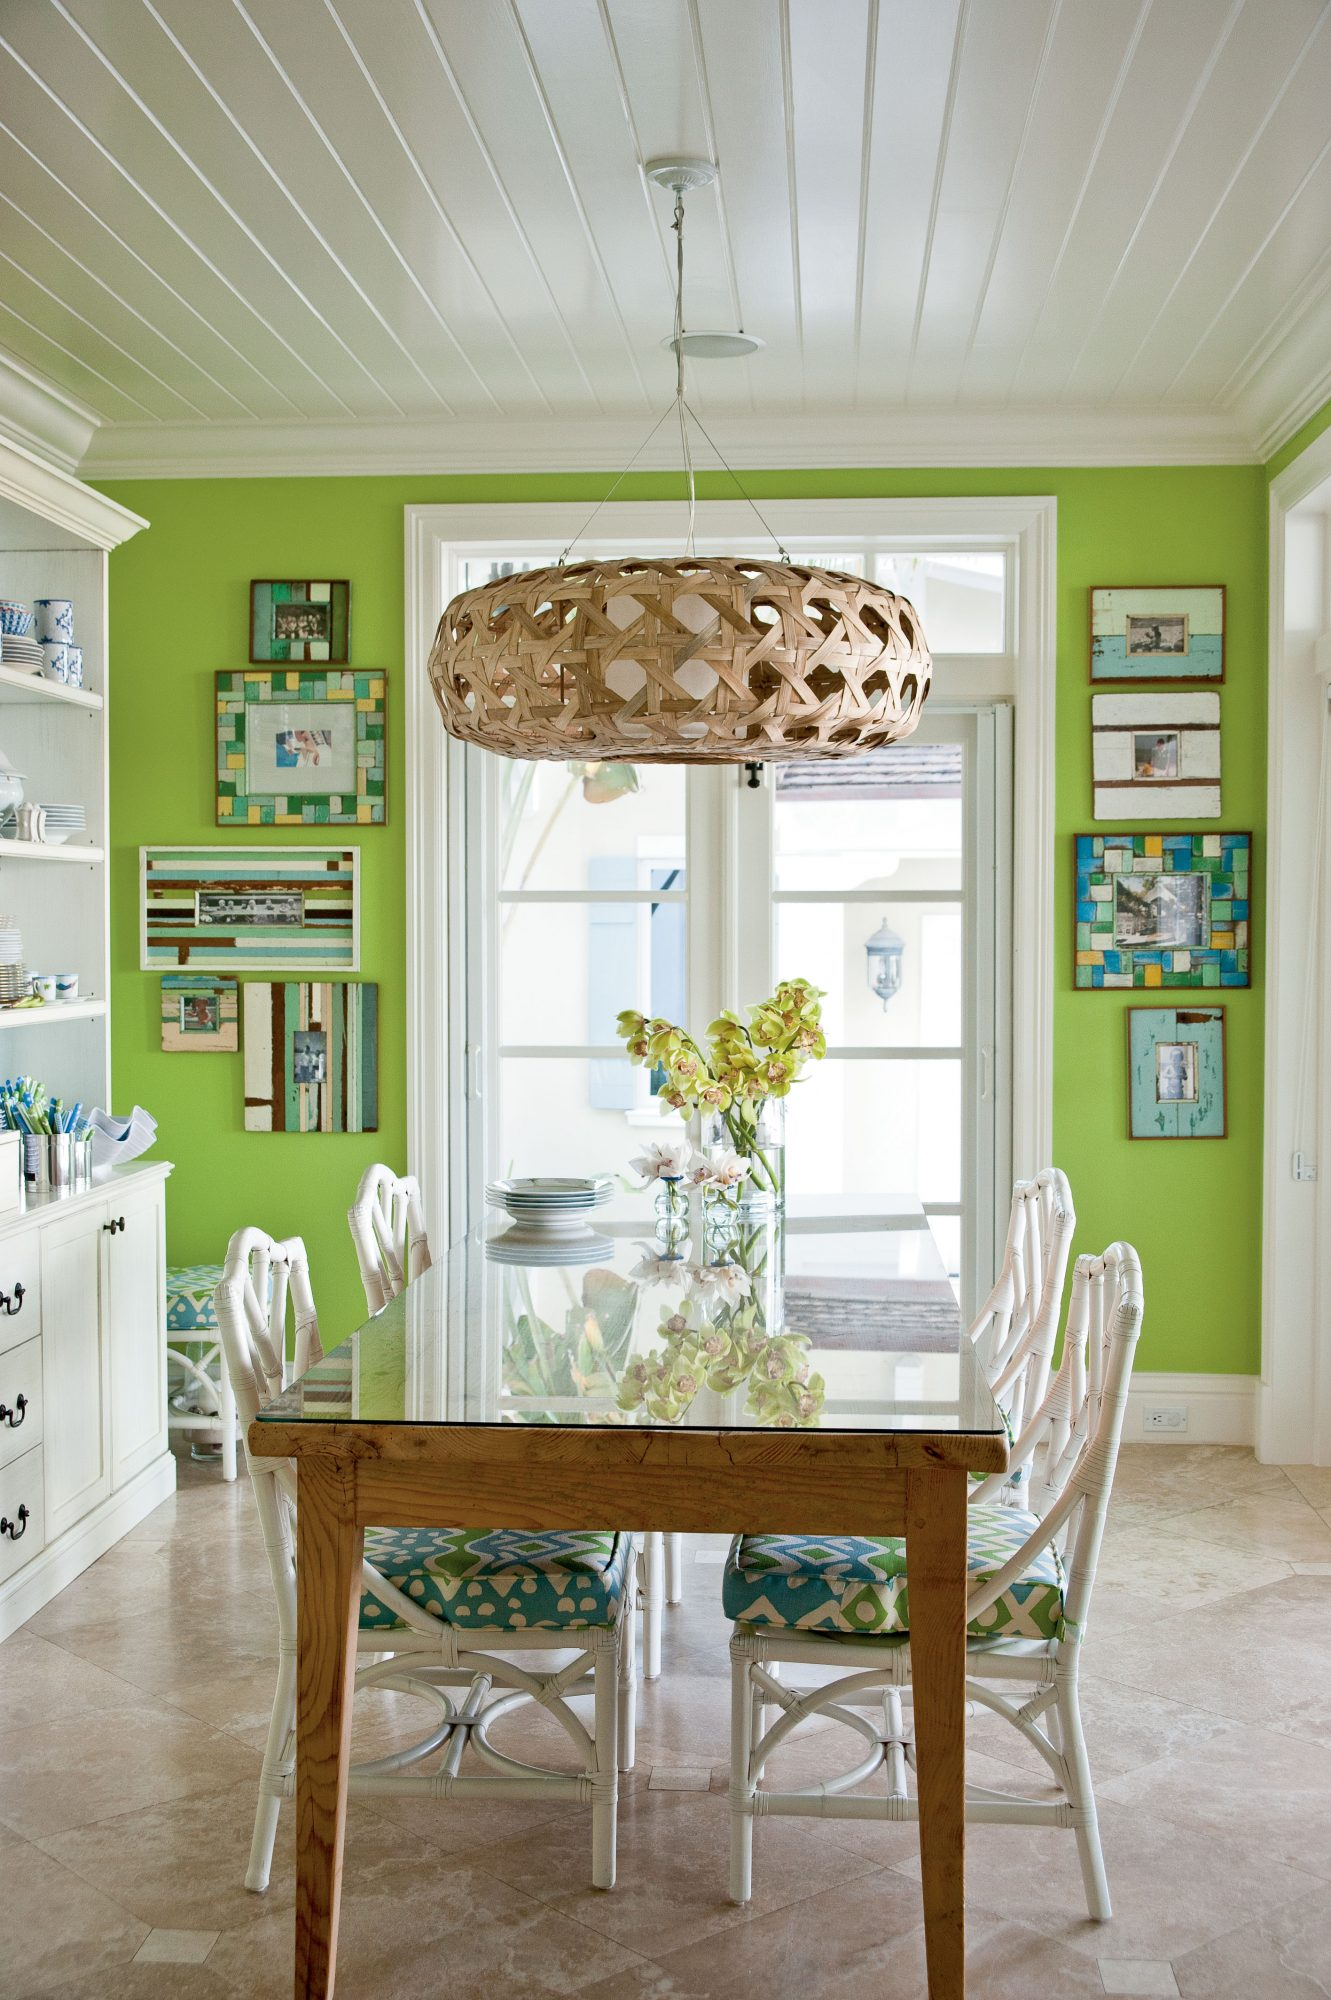 The home's playful, bright color palette comes alive in the dining room, where a grass green hue covers the walls. White wicker chairs and graphic picture frames help subdue the bold shade.